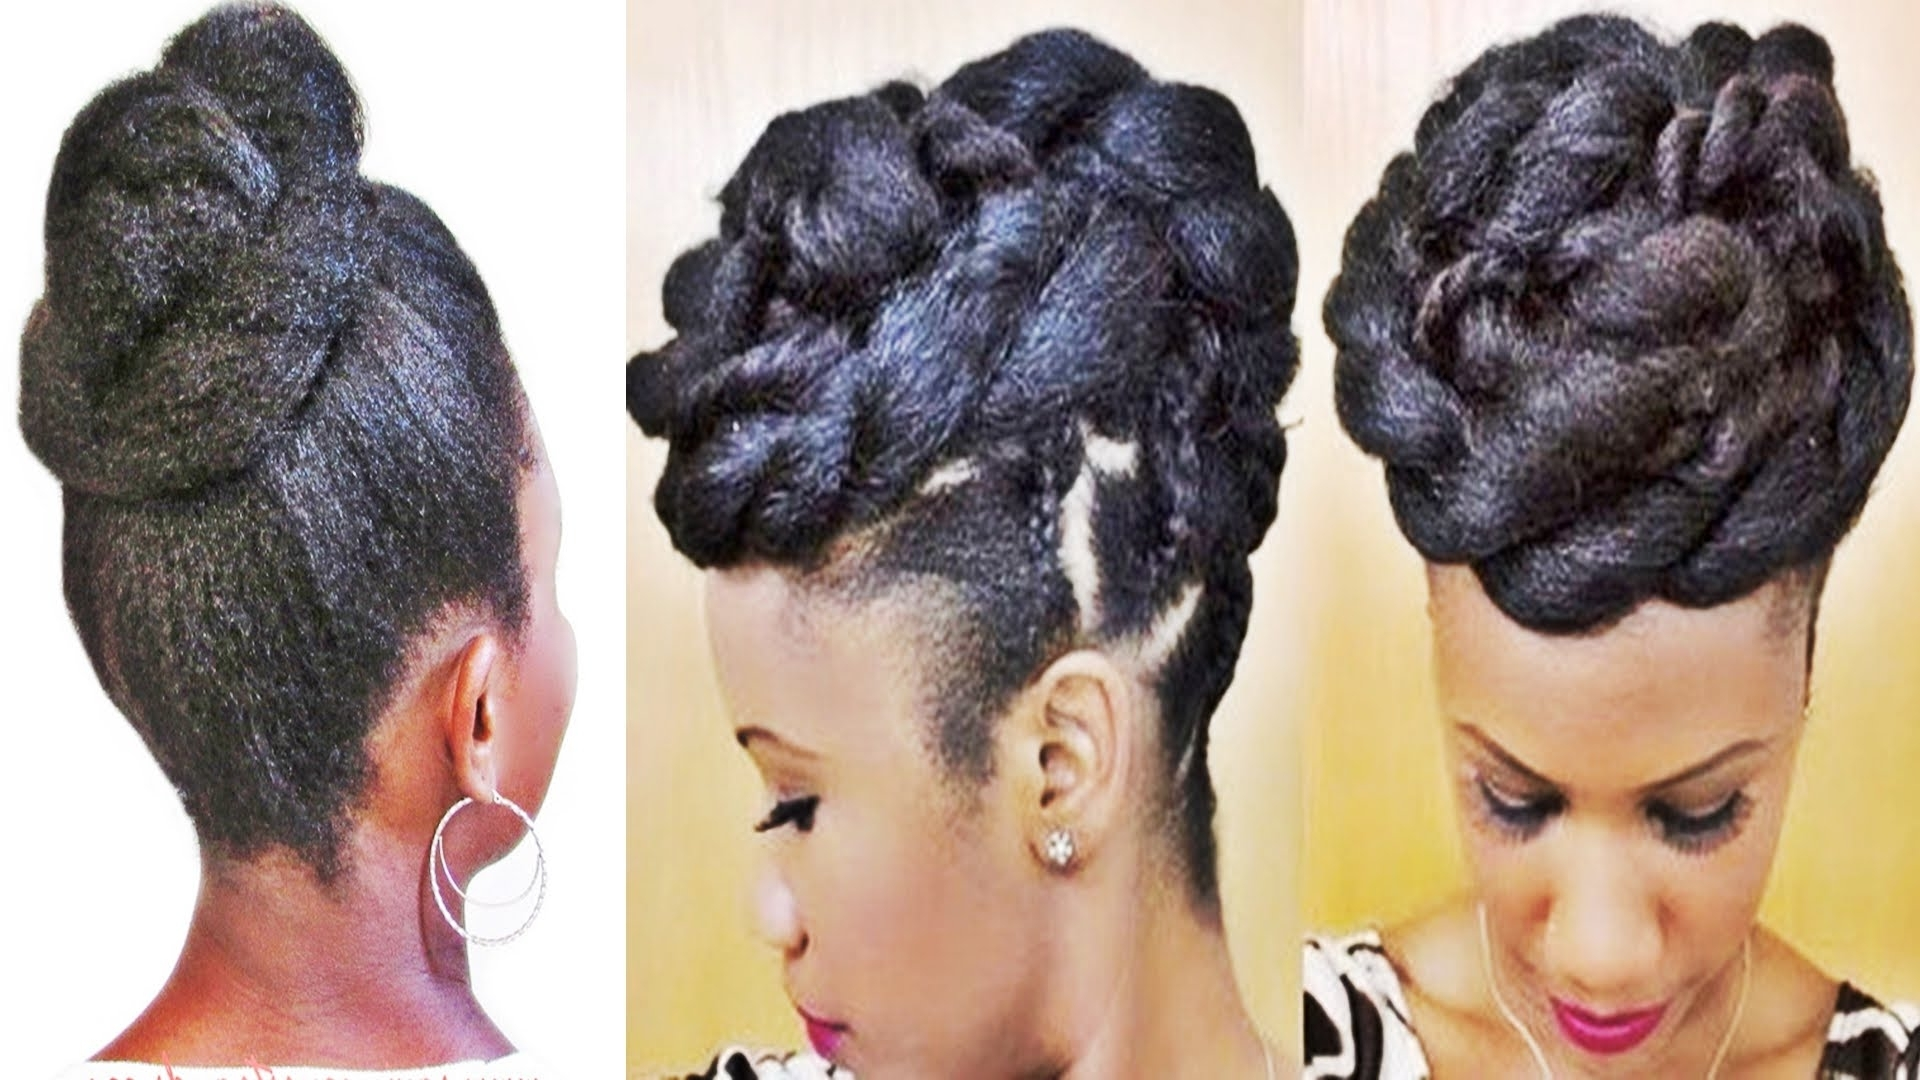 Braids And Twists Updo Hairstyle For Black Women – Youtube Intended For Braided Updo Hairstyles For Black Hair (View 9 of 15)